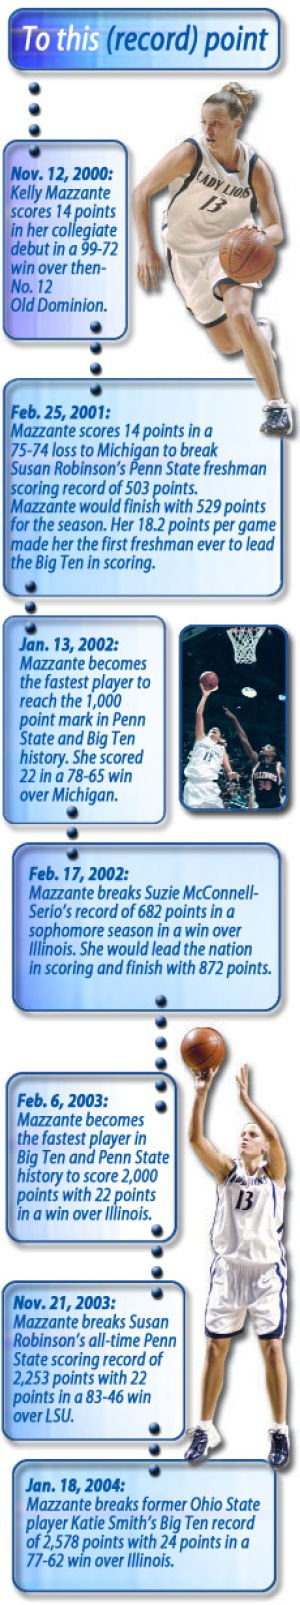 Mazzante breaks all-time Big Ten scoring record